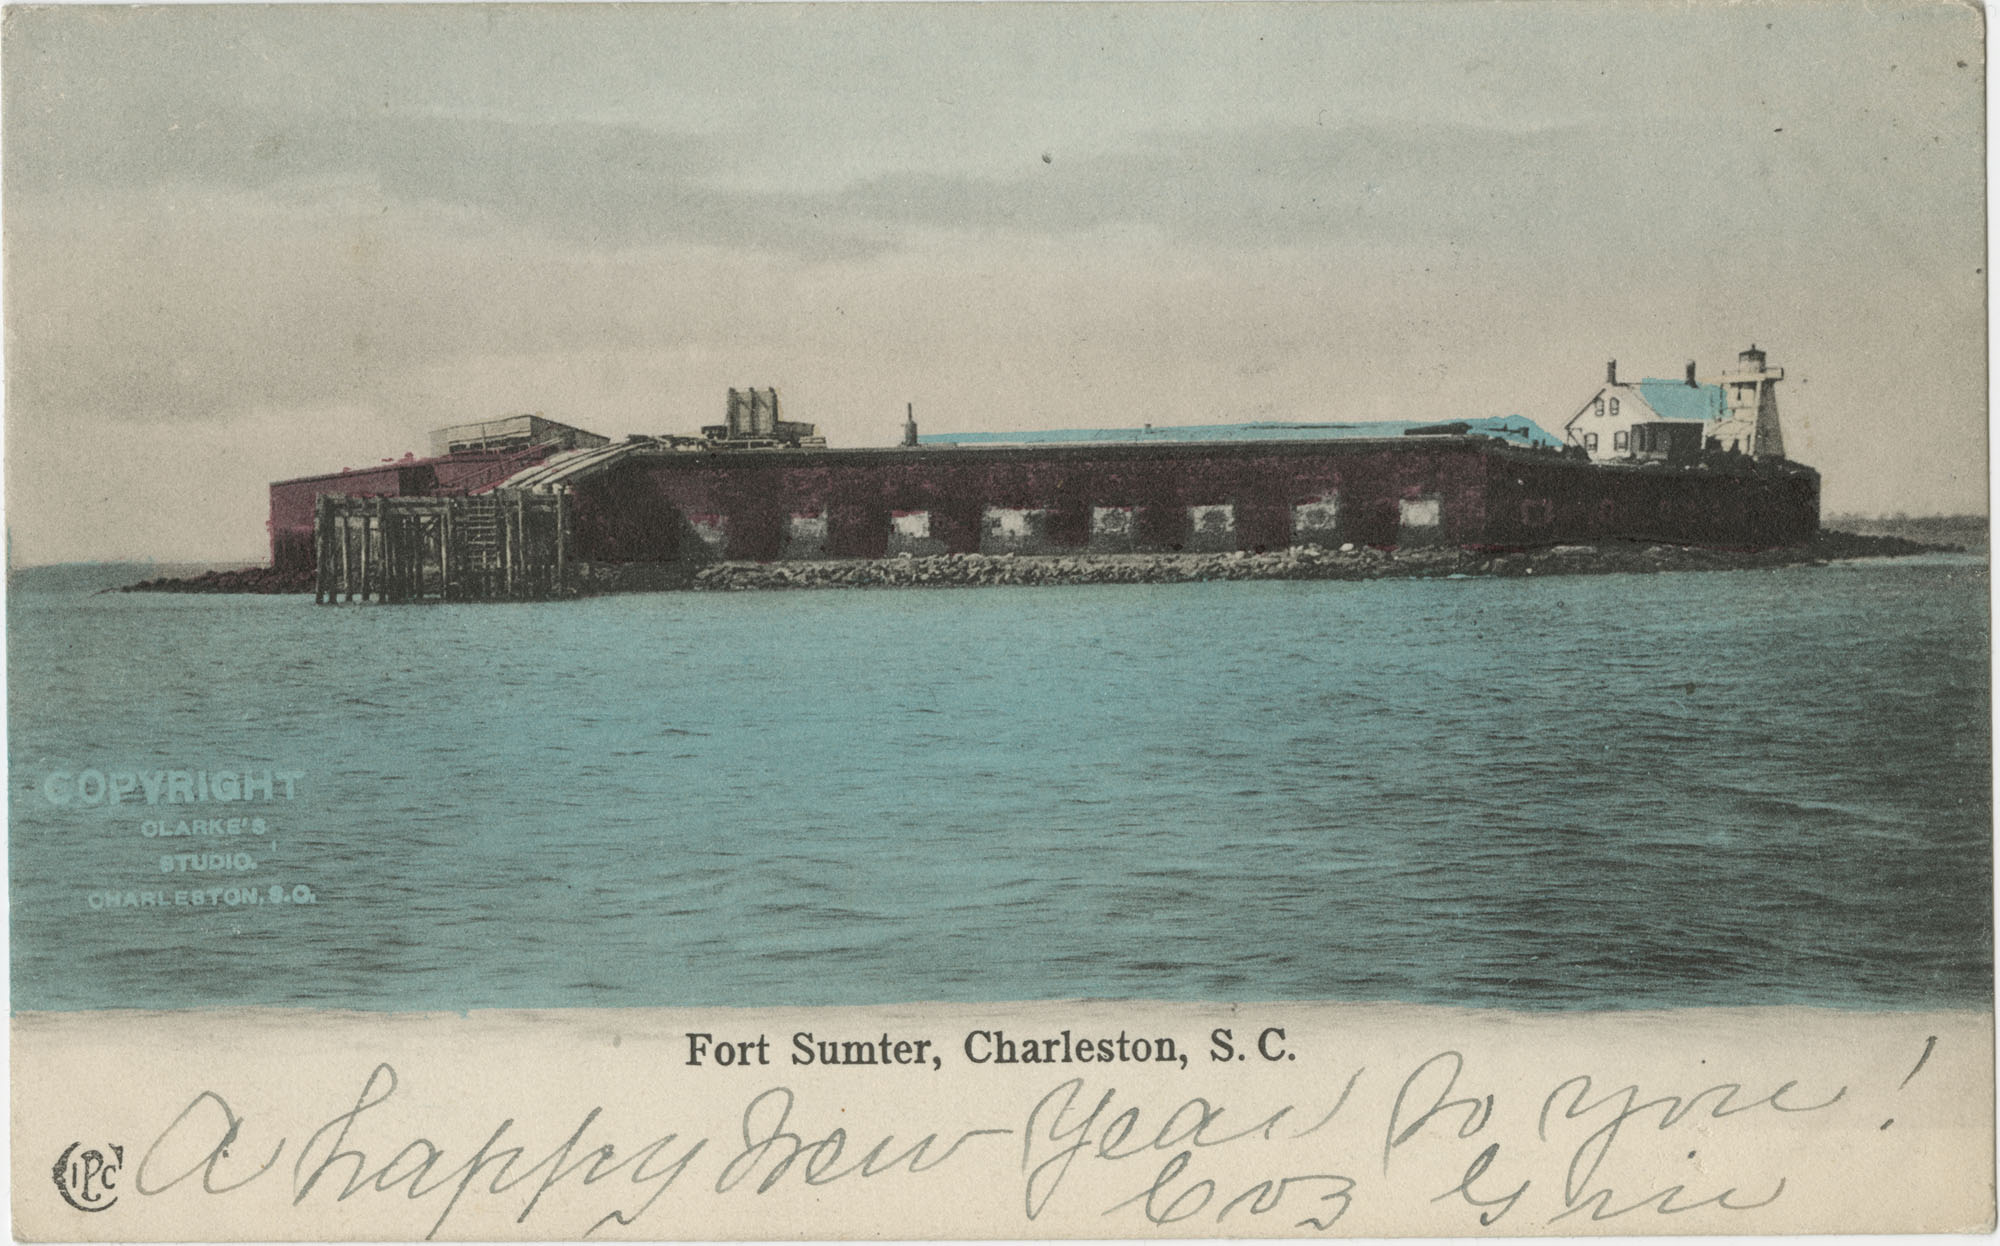 Fort Sumter, Charleston, S.C.